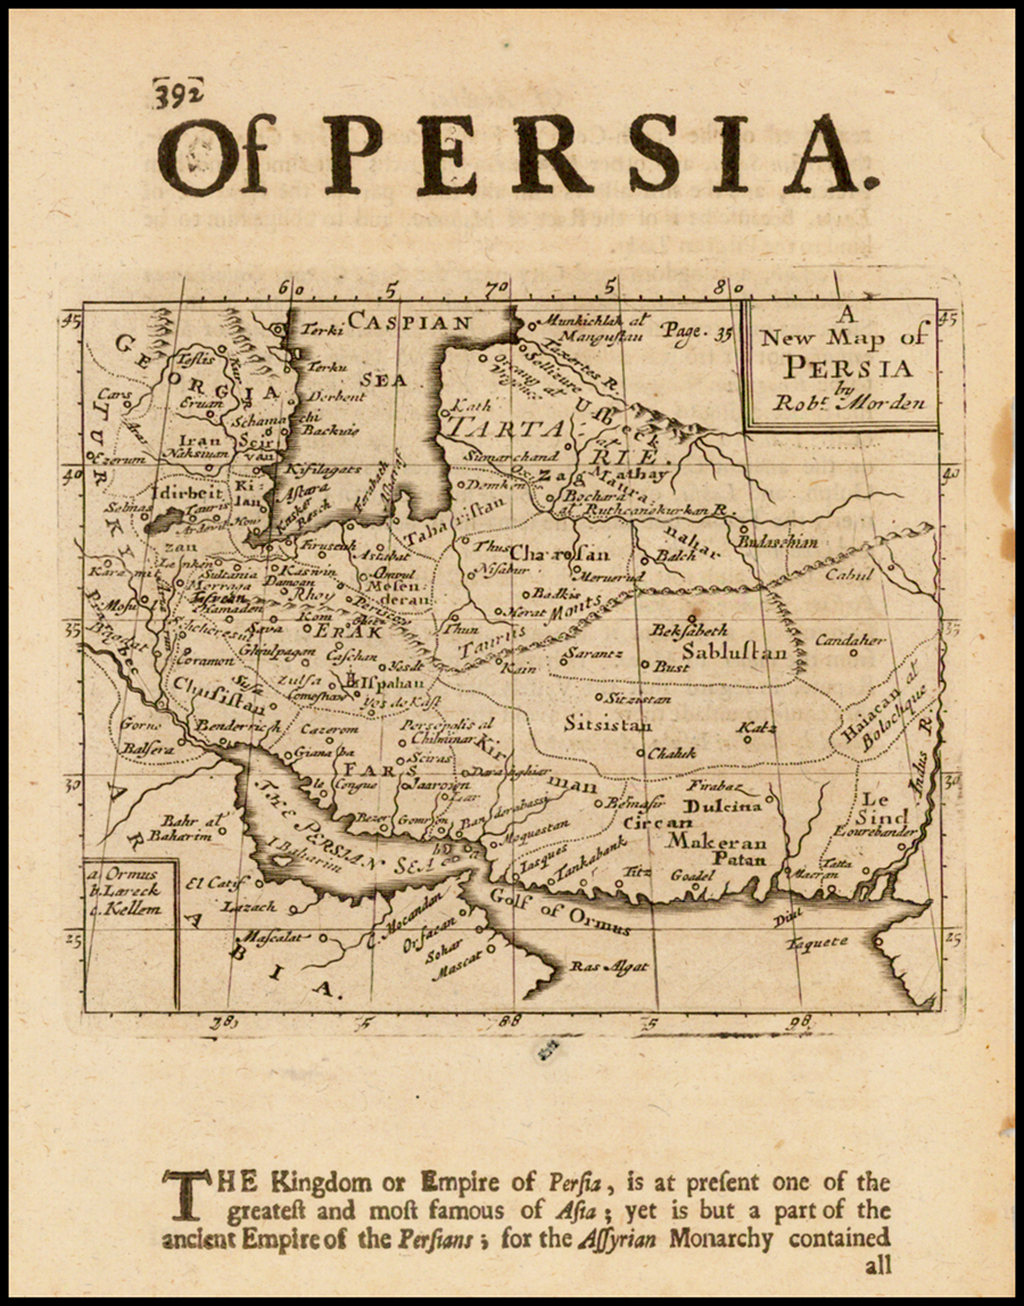 A New Map of Persia By Robert Morden